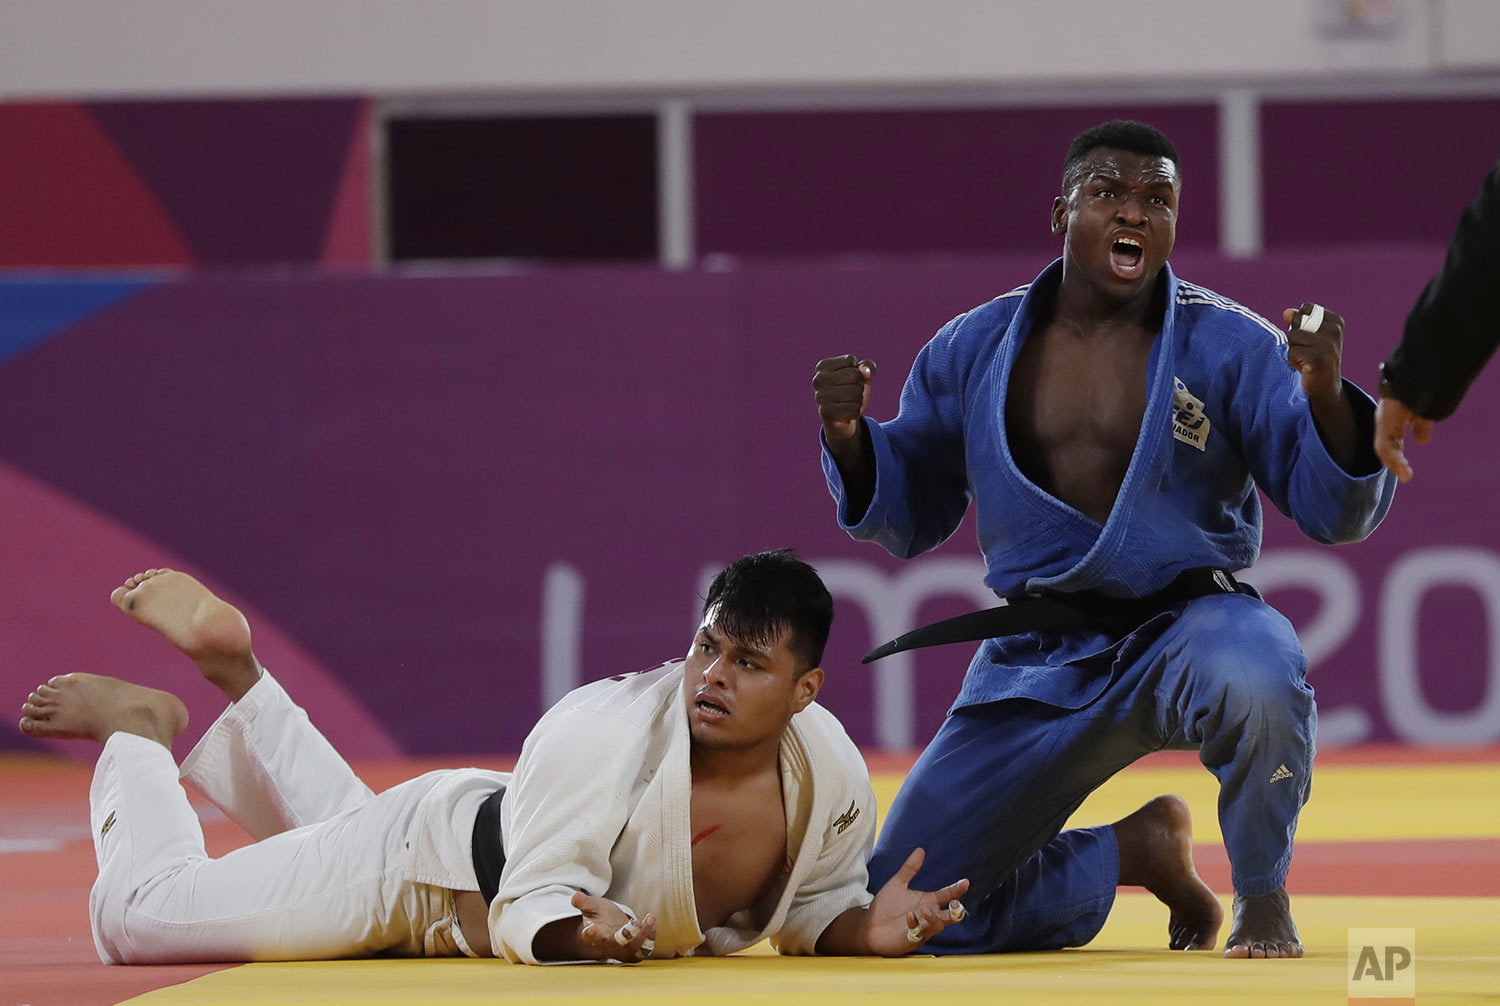 Junior Angulo of Ecuador, right, celebrates after beating Jose Arroyo of Peru in the men's - 100kg bronze medal judo match at the Pan American Games in Lima Peru, Sunday, Aug.11, 2019. (AP Photo/Silvia Izquierdo)